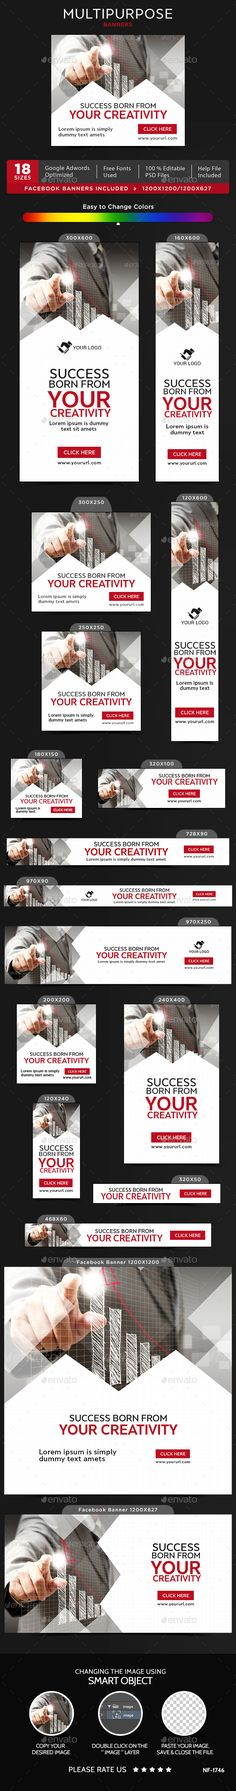 Multipurpose Banners - Banners & Ads Web Elements Download here : https://graphicriver.net/item/multipurpose-banners/19661486?s_rank=39&ref=Al-fatih